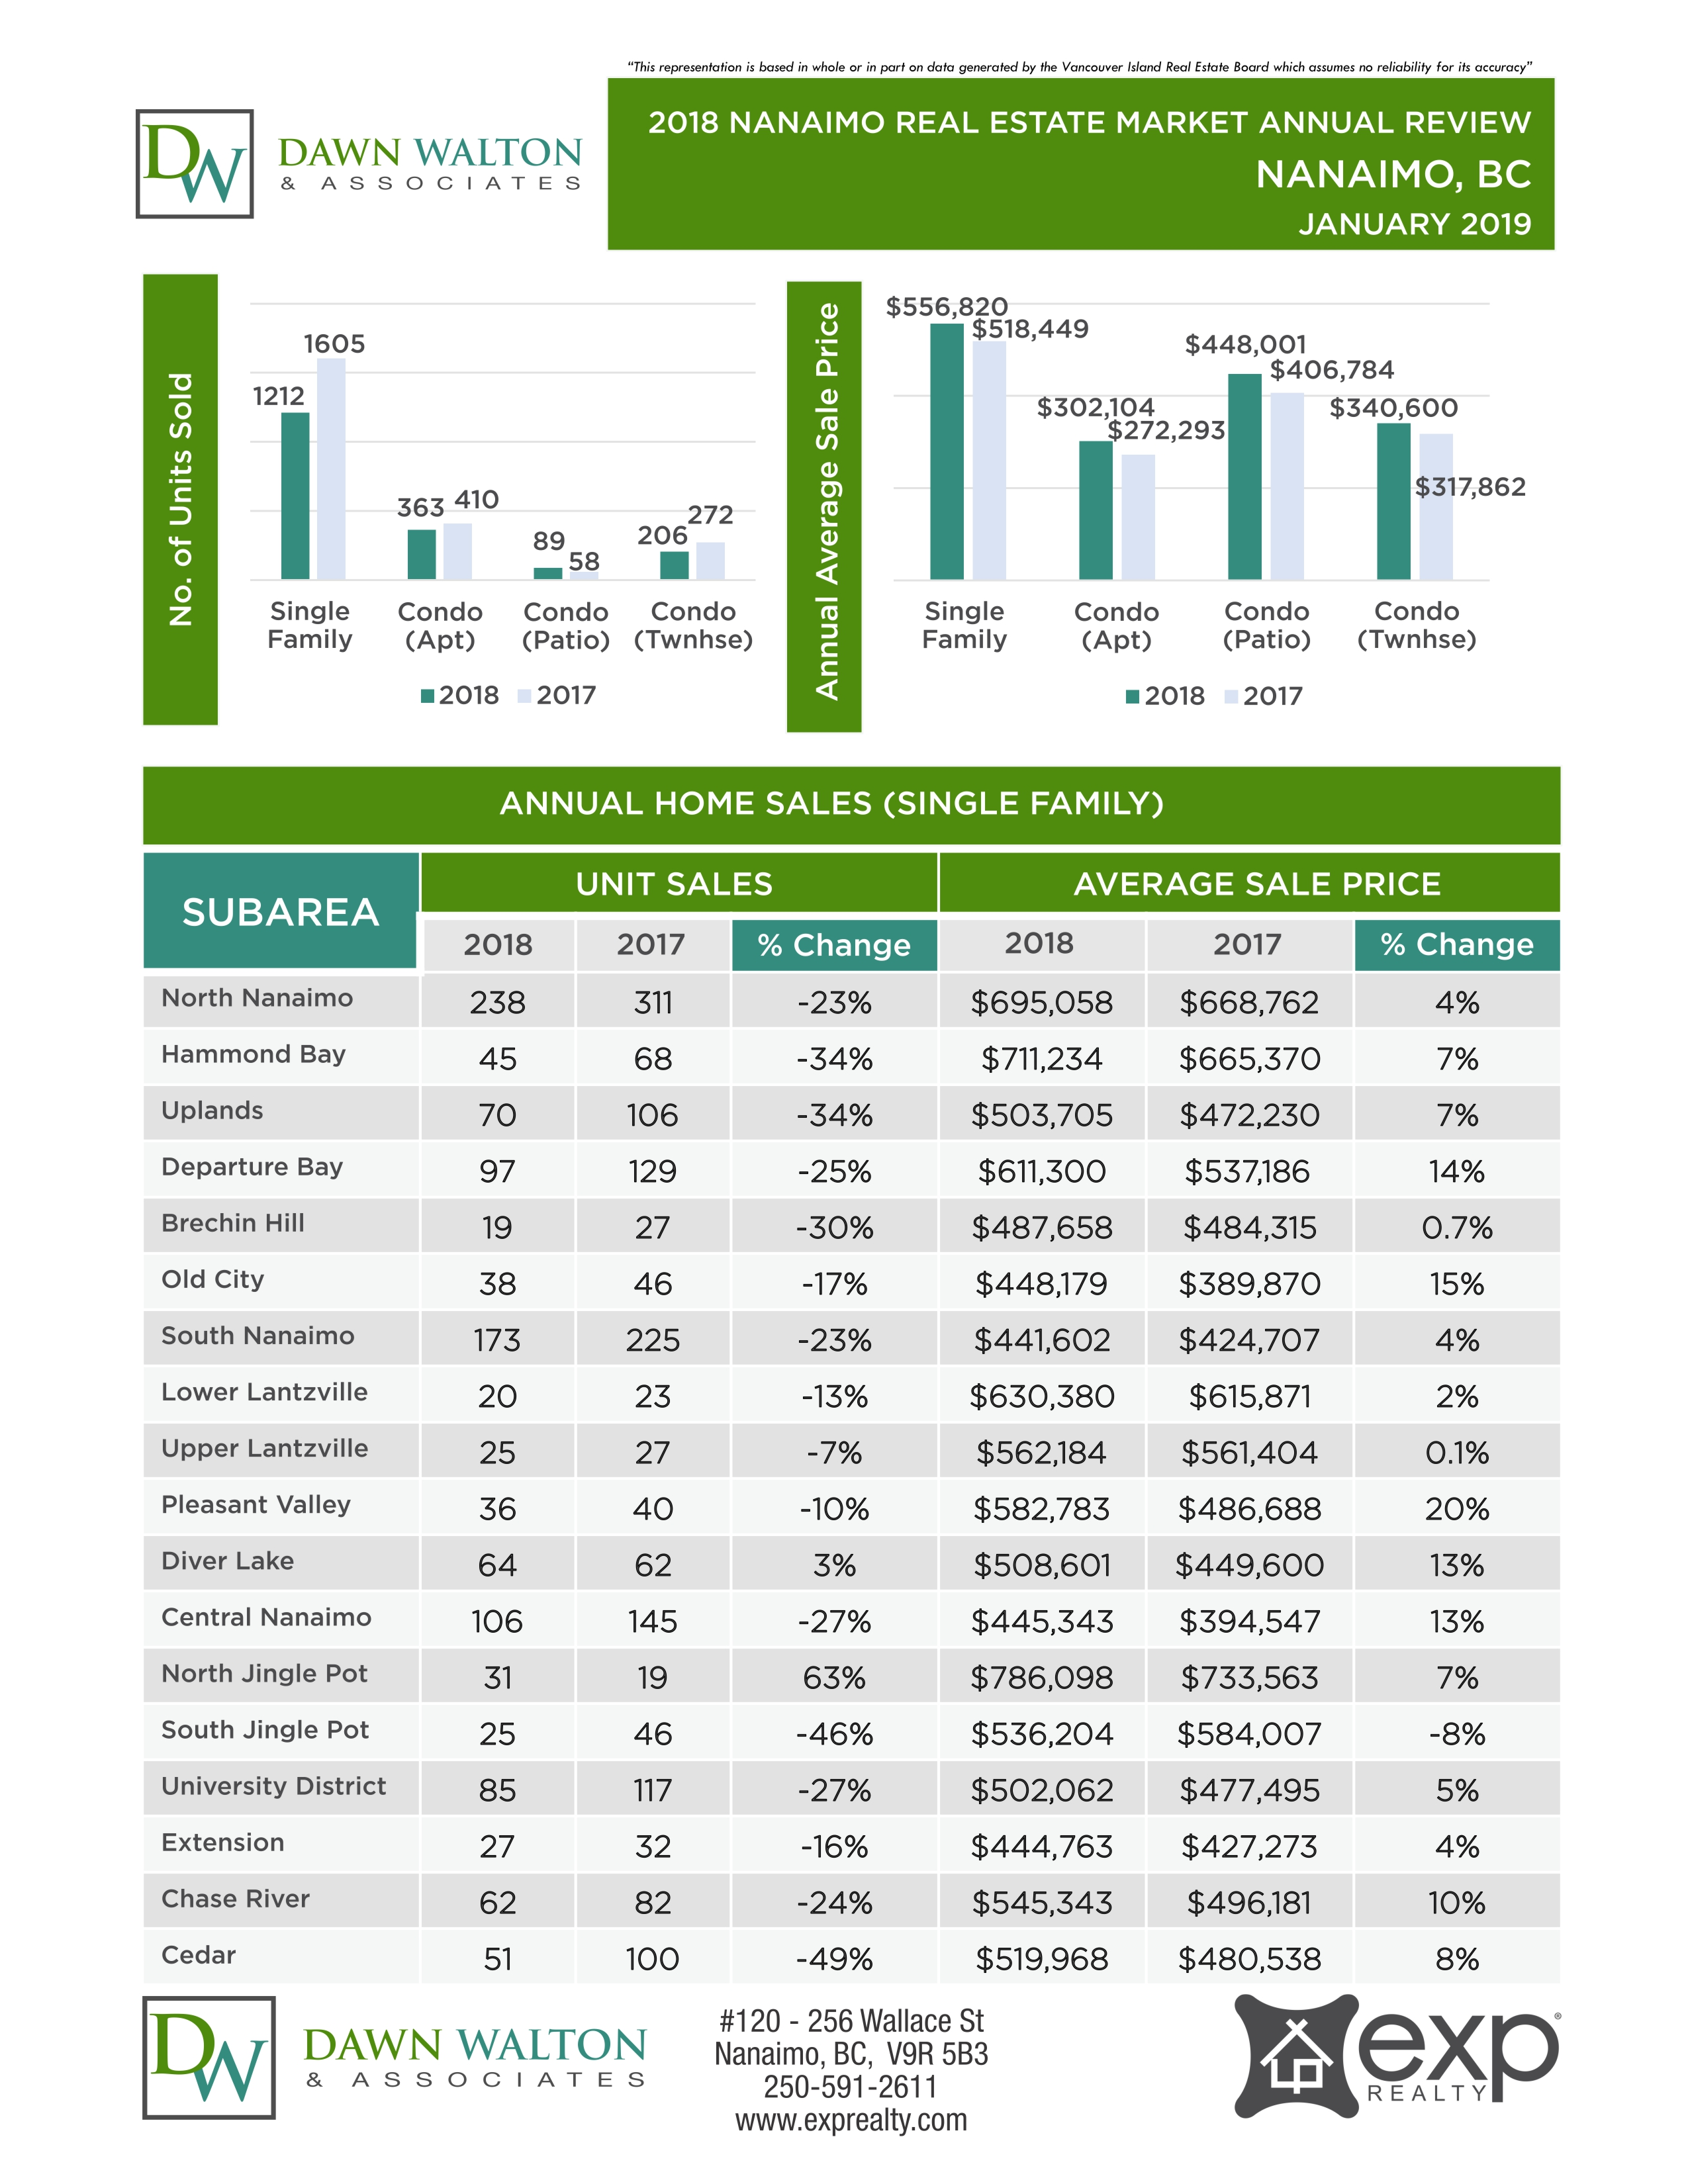 2018 Nanaimo Real Estate Market Annual Review - Nanaimo Realtor - Dawn Walton & Associates